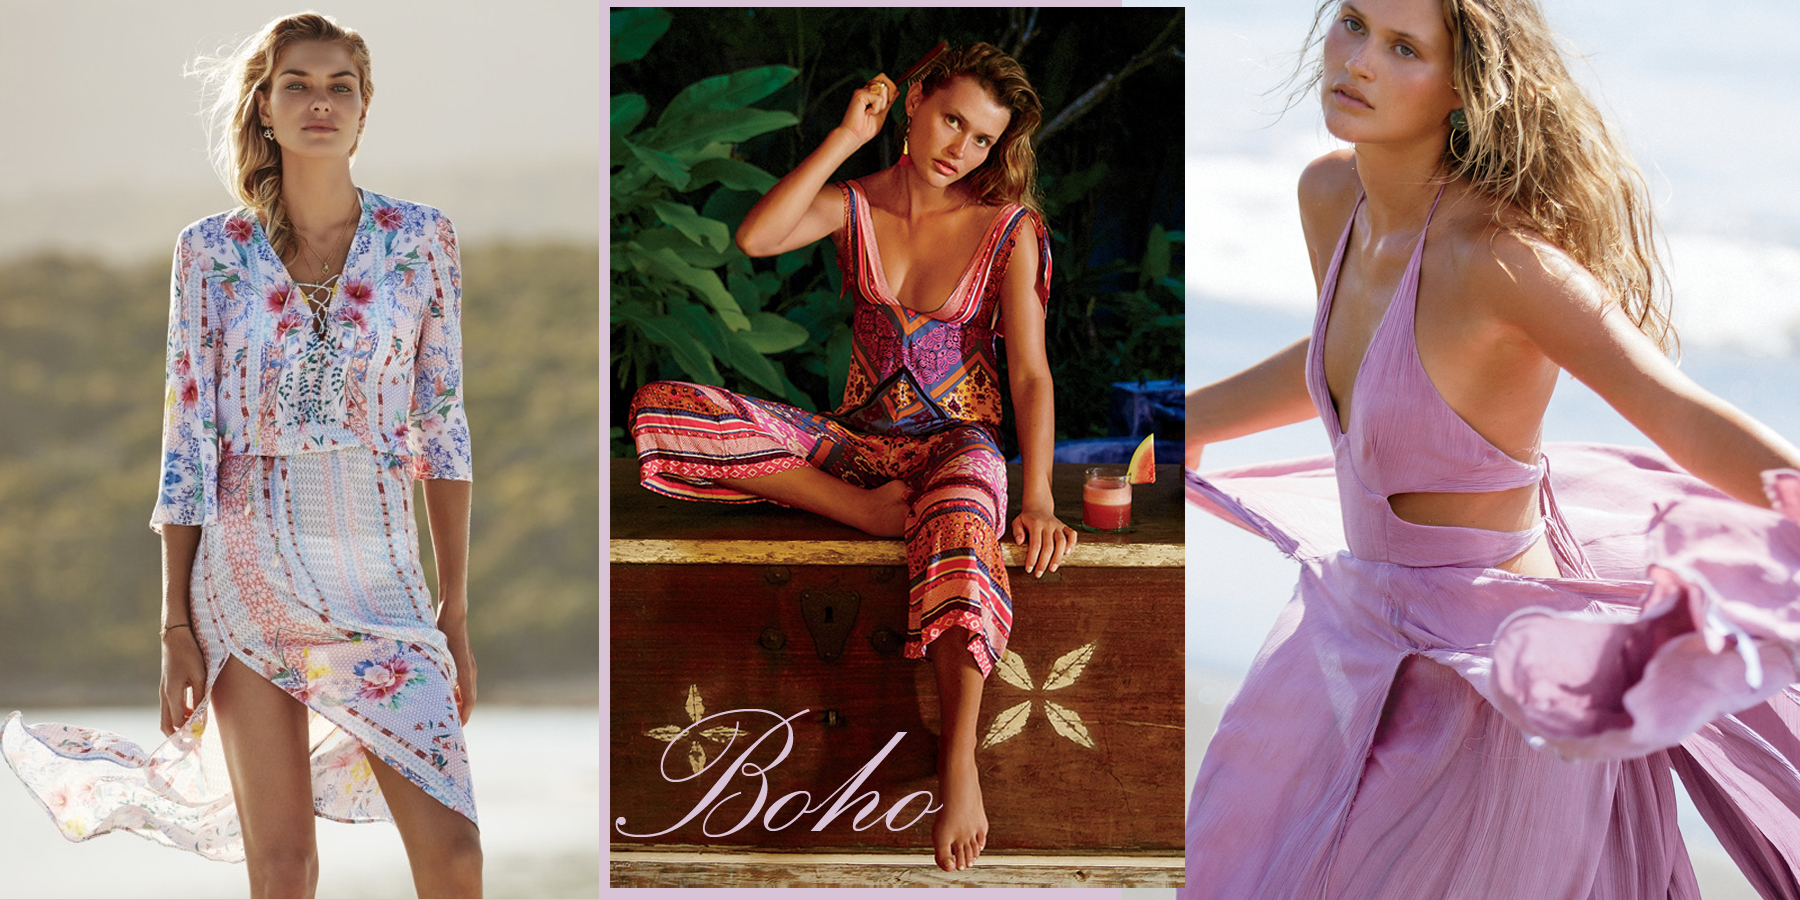 Women's Boho Fashion